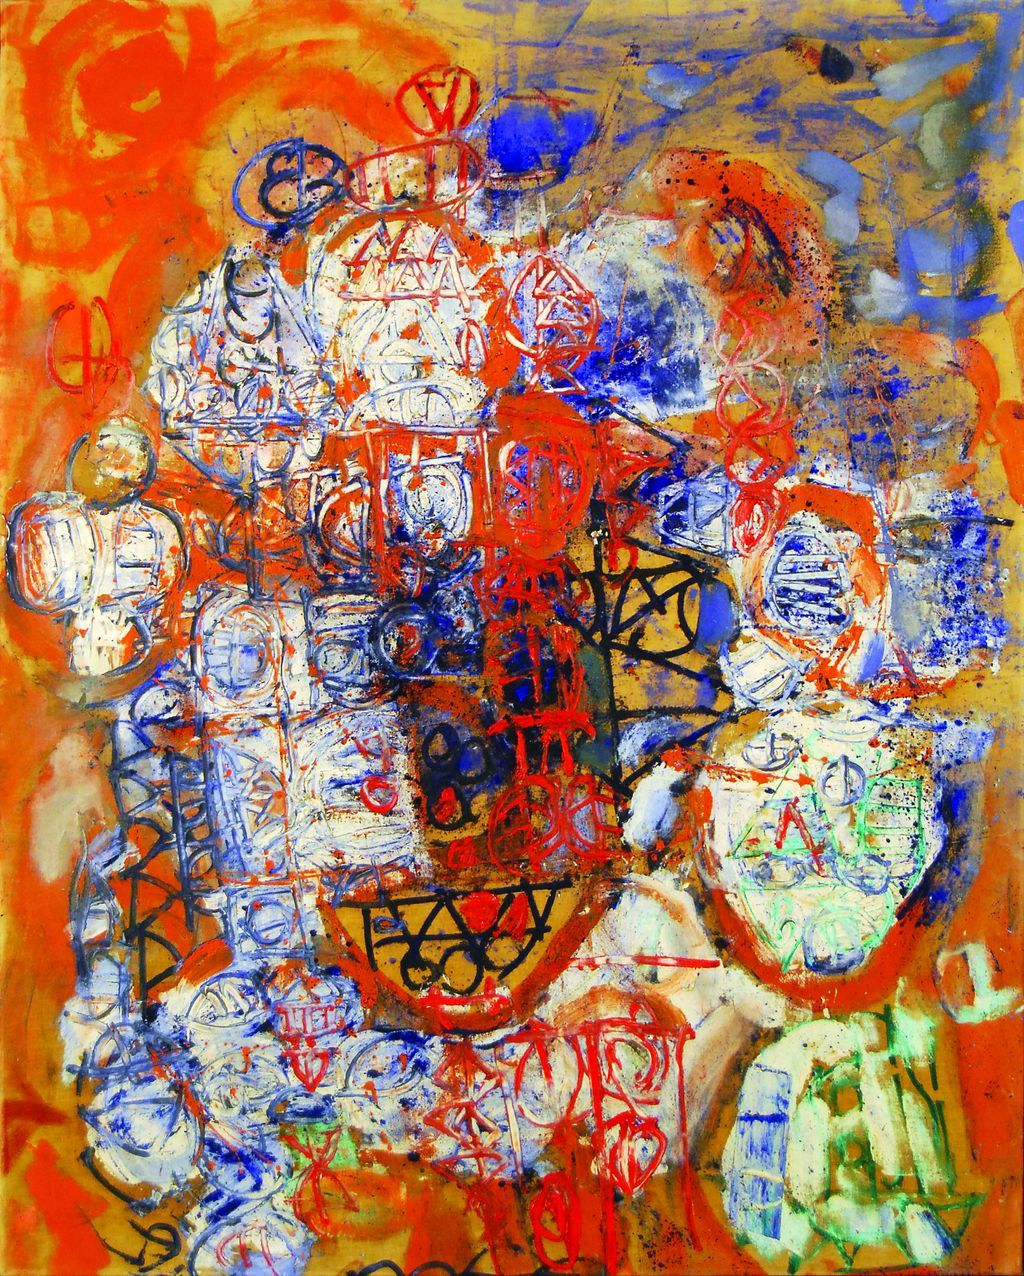 Stuart Sutcliff Hamburg Series 4br Oil On Canvasbr 39